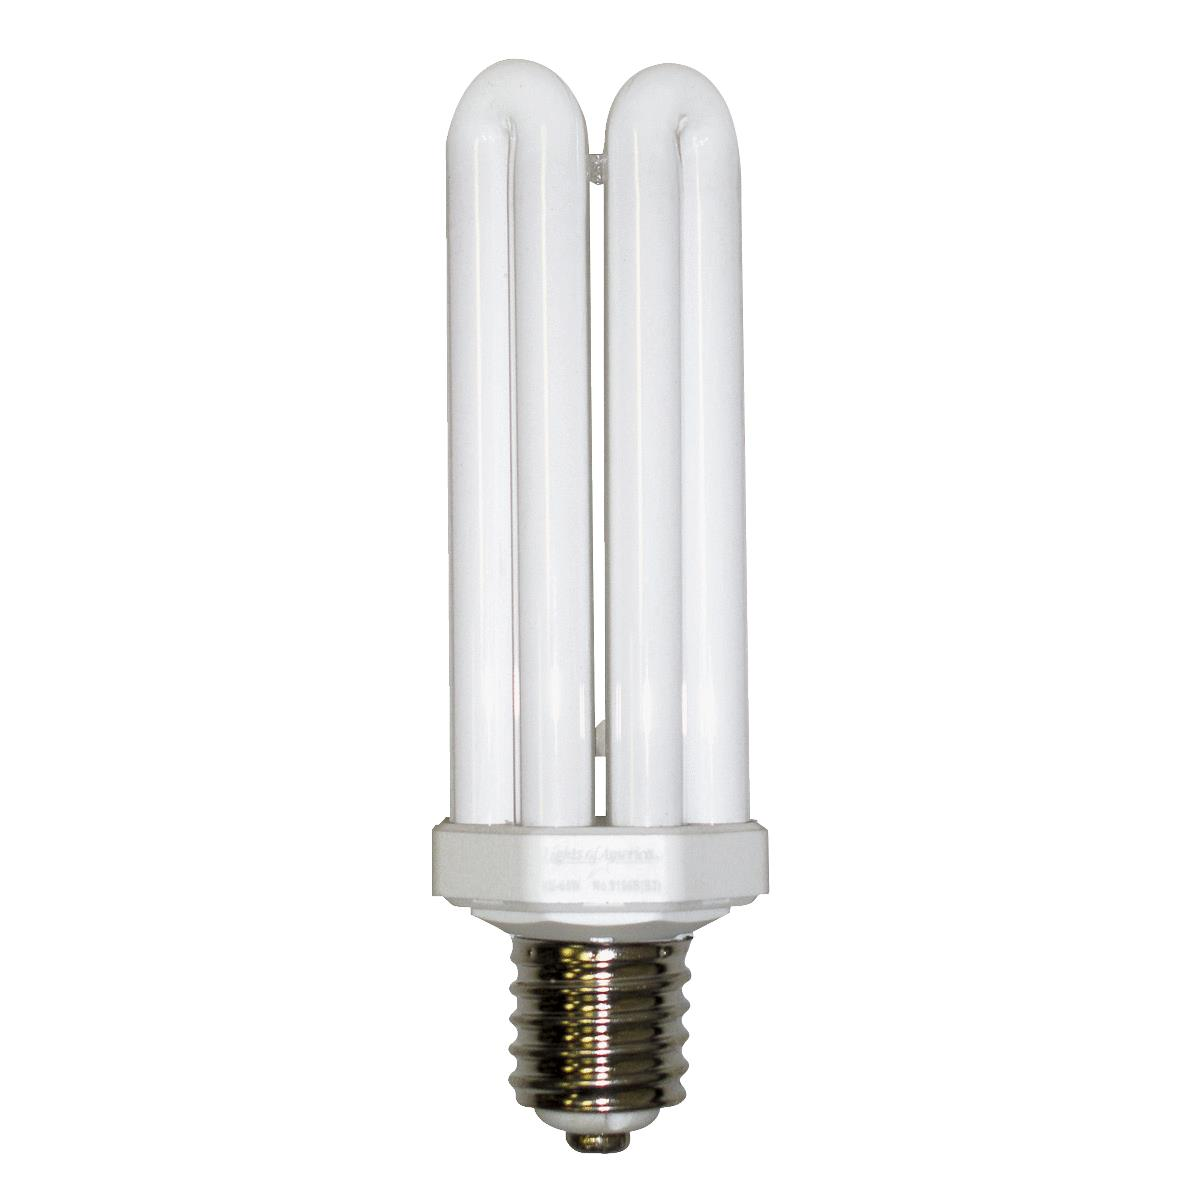 Buy Lights Of America Fluorex Replacement Cfl Light Bulb